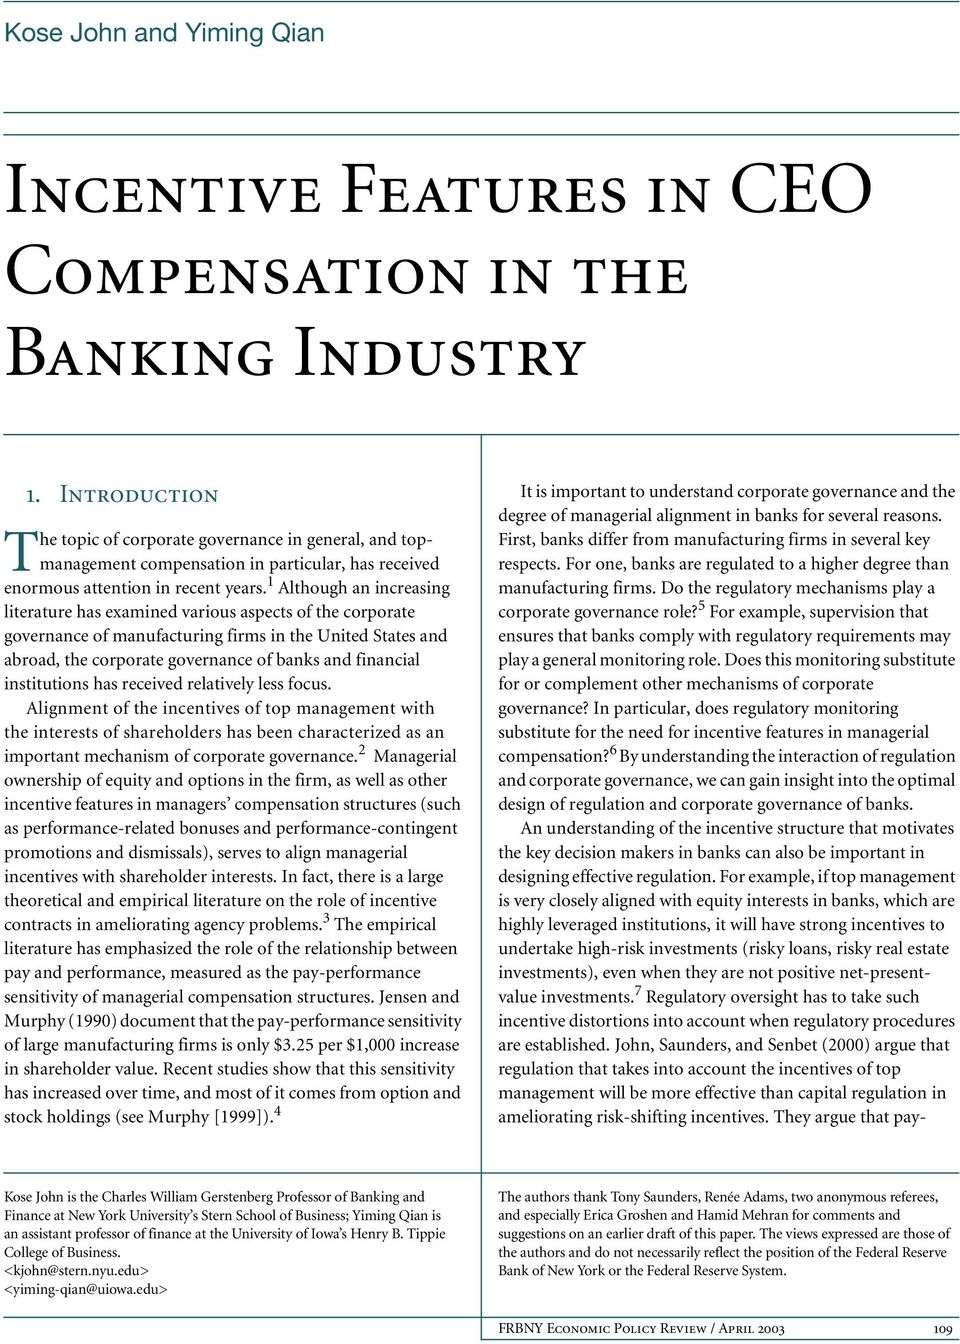 1 Although an increasing literature has examined various aspects of the corporate governance of manufacturing firms in the United States and abroad, the corporate governance of banks and financial